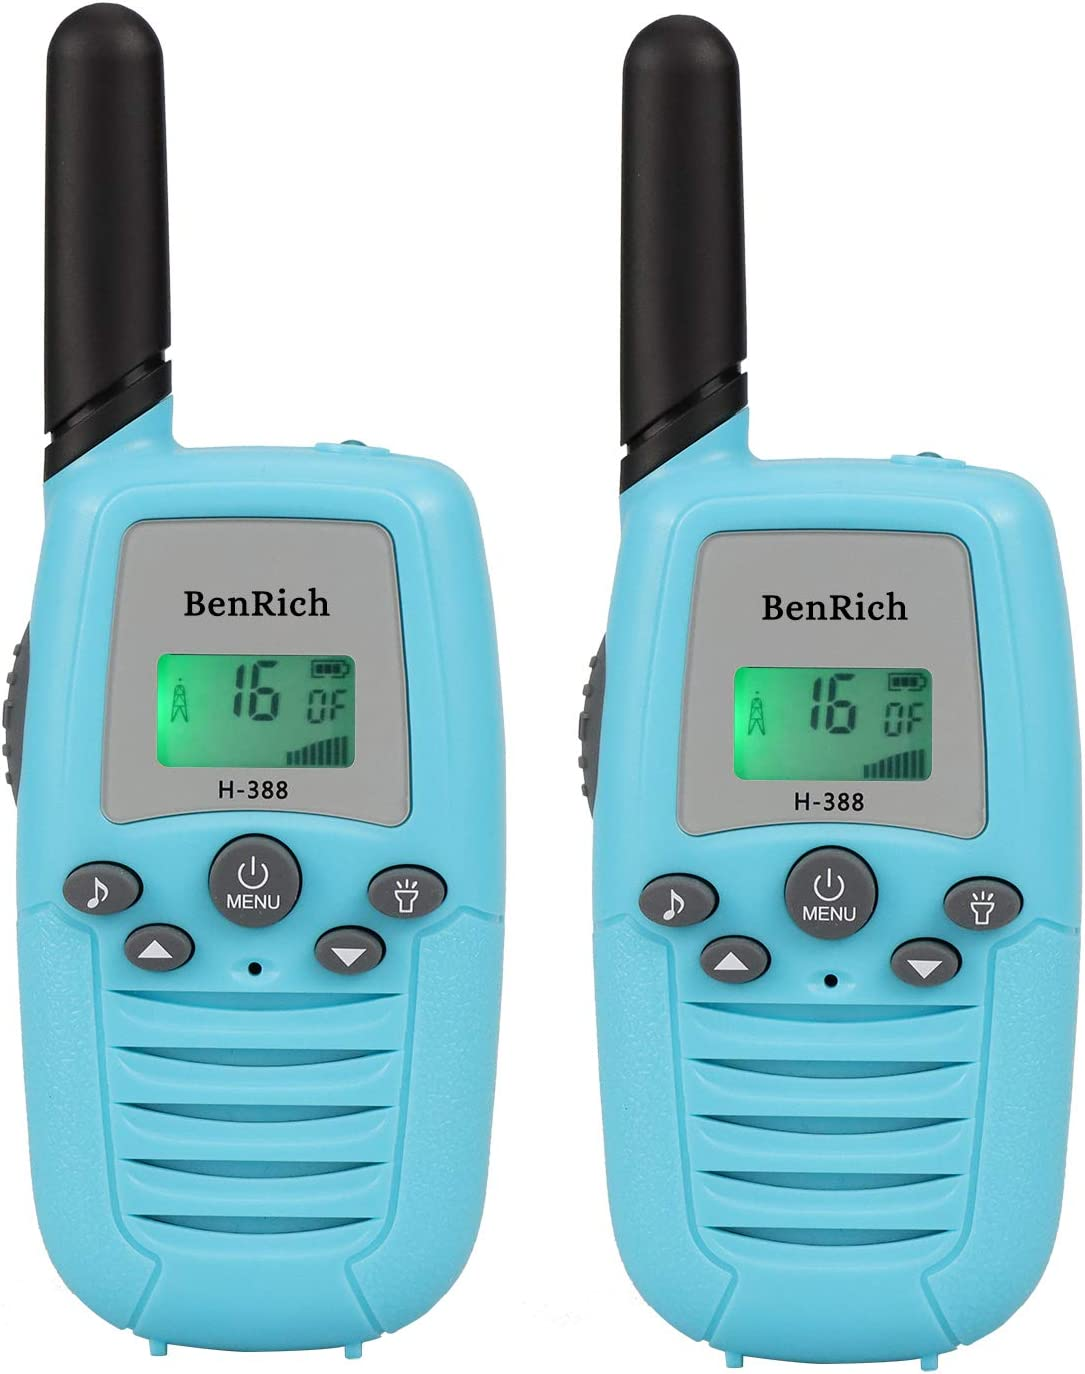 BenRich H-388 Walkie Talkies New item Toys Long 22 Radio Max 59% OFF Range Channel fo